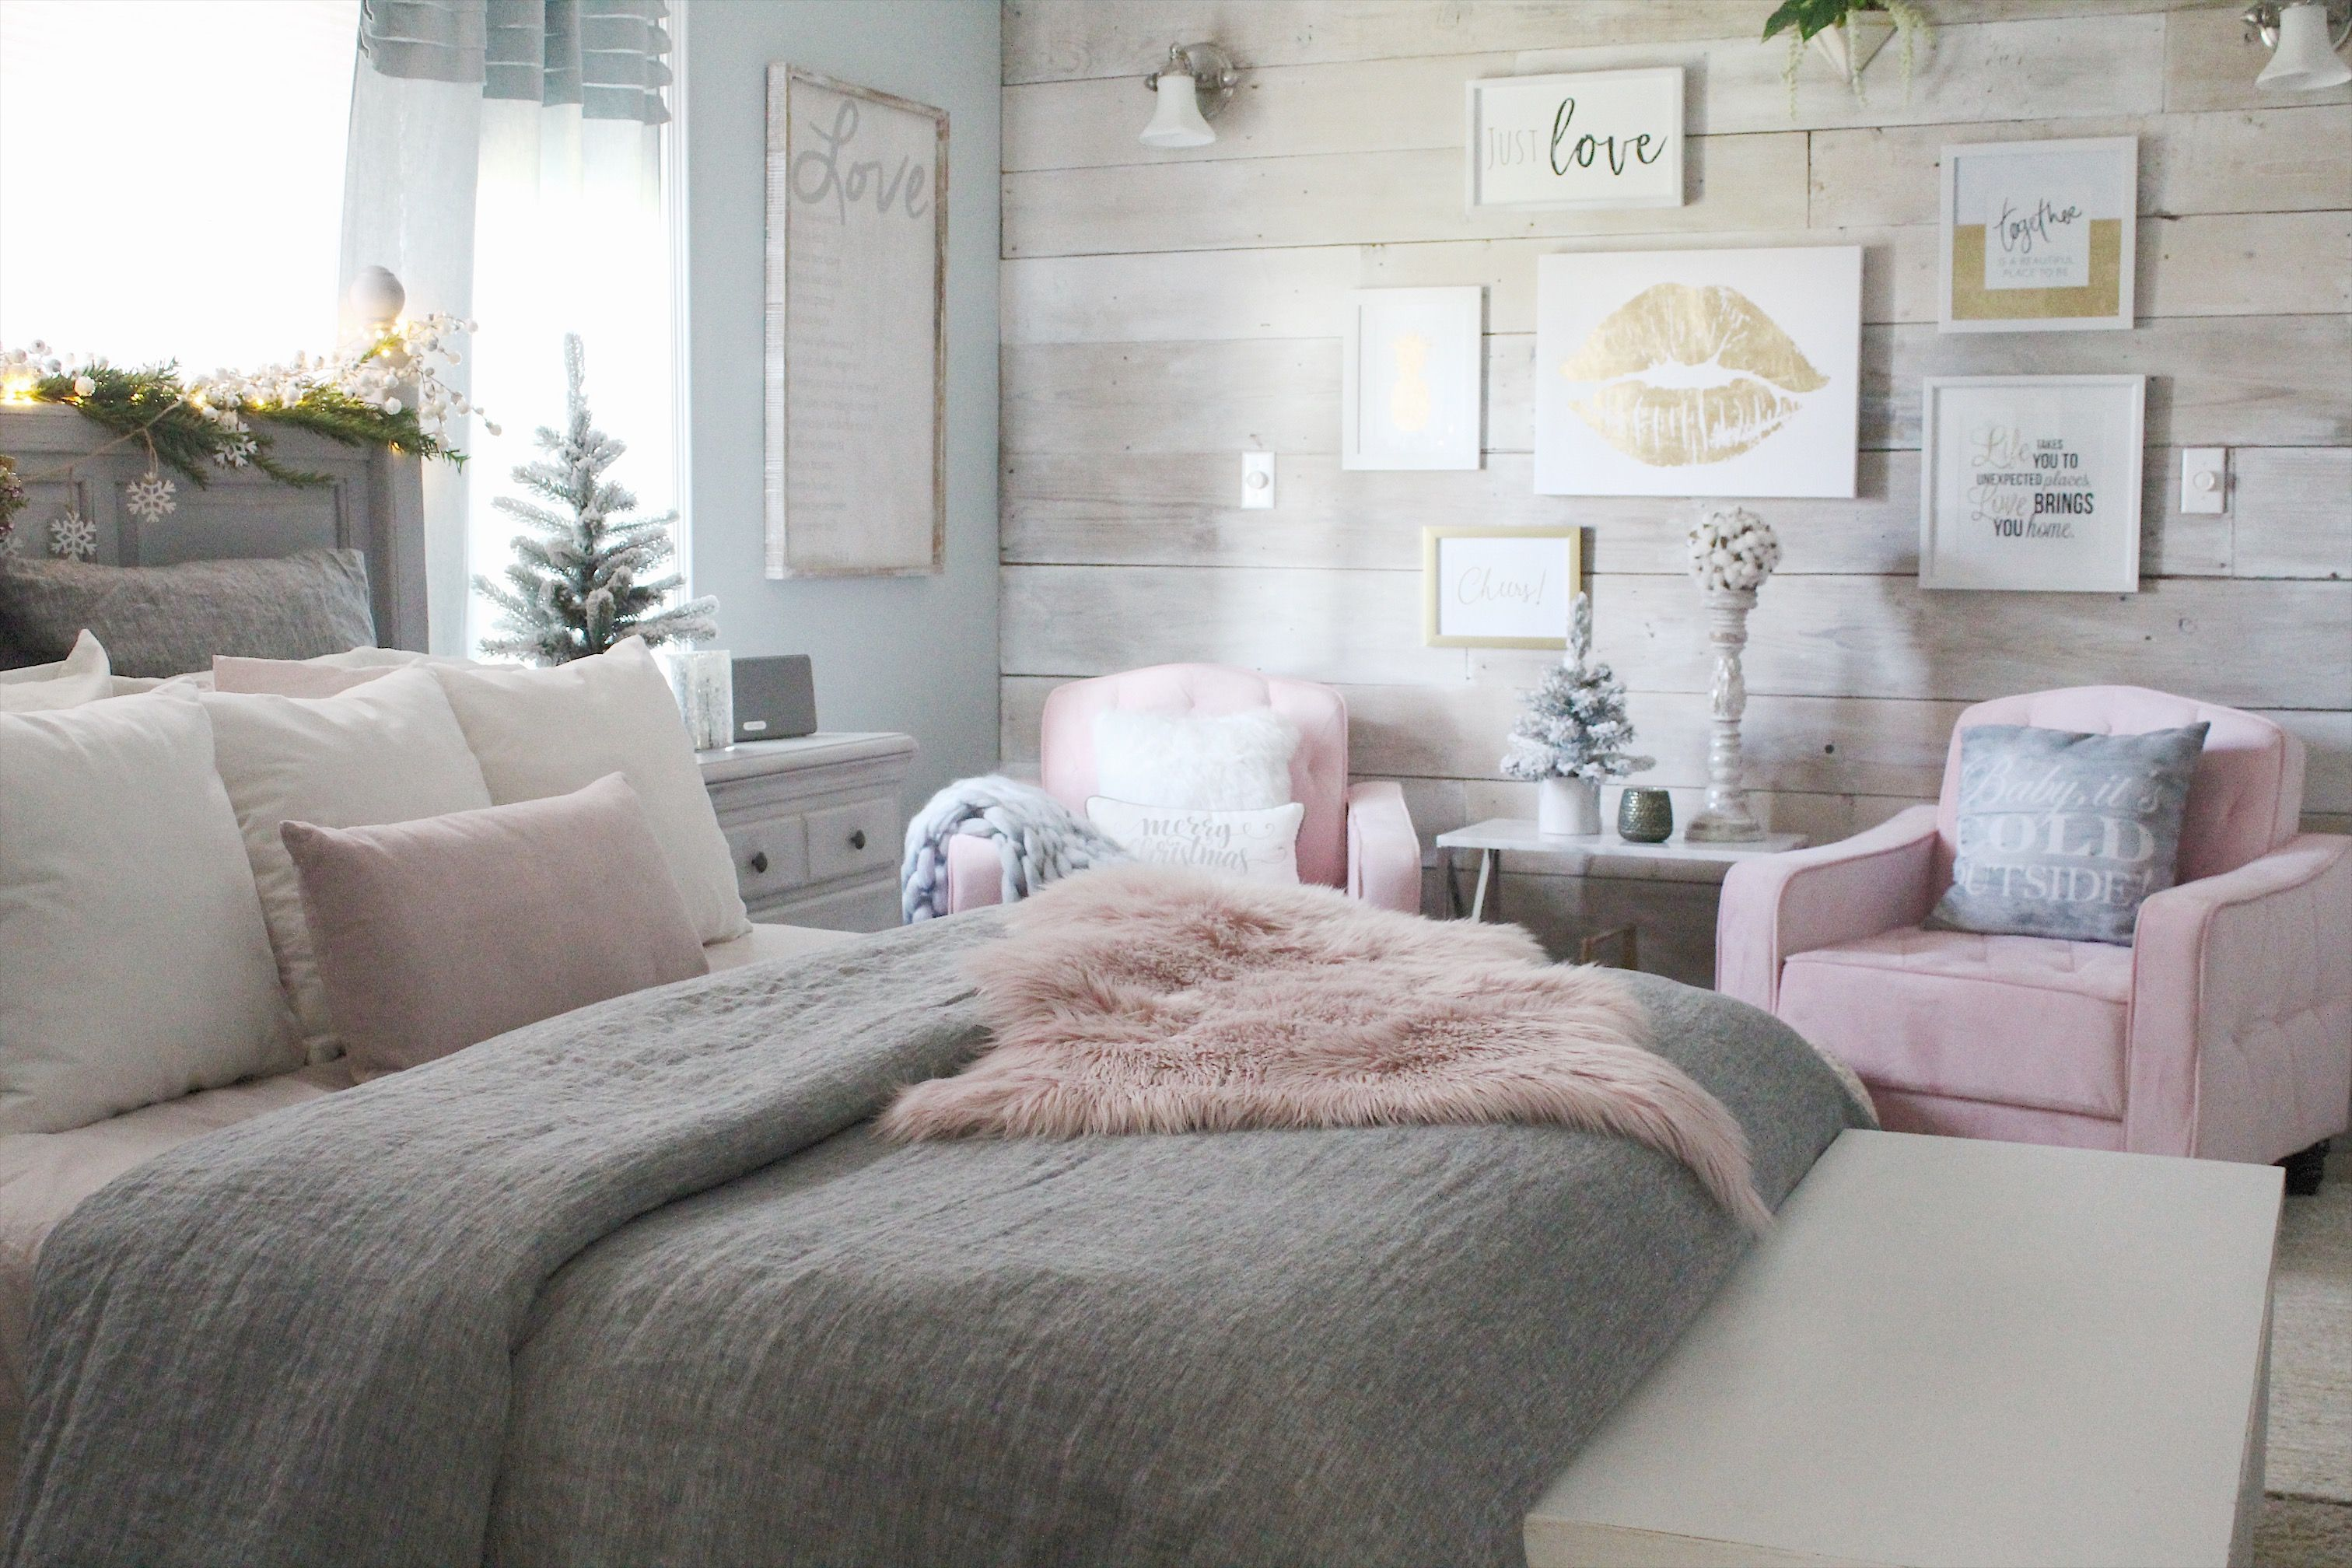 Blush Pink Bedroom Ideas Blush Pink Bedroom Ideas Bedroomdecorationart Bedro Interior Design Bedroom Teenage Interior Design Bedroom Small Bedroom Design